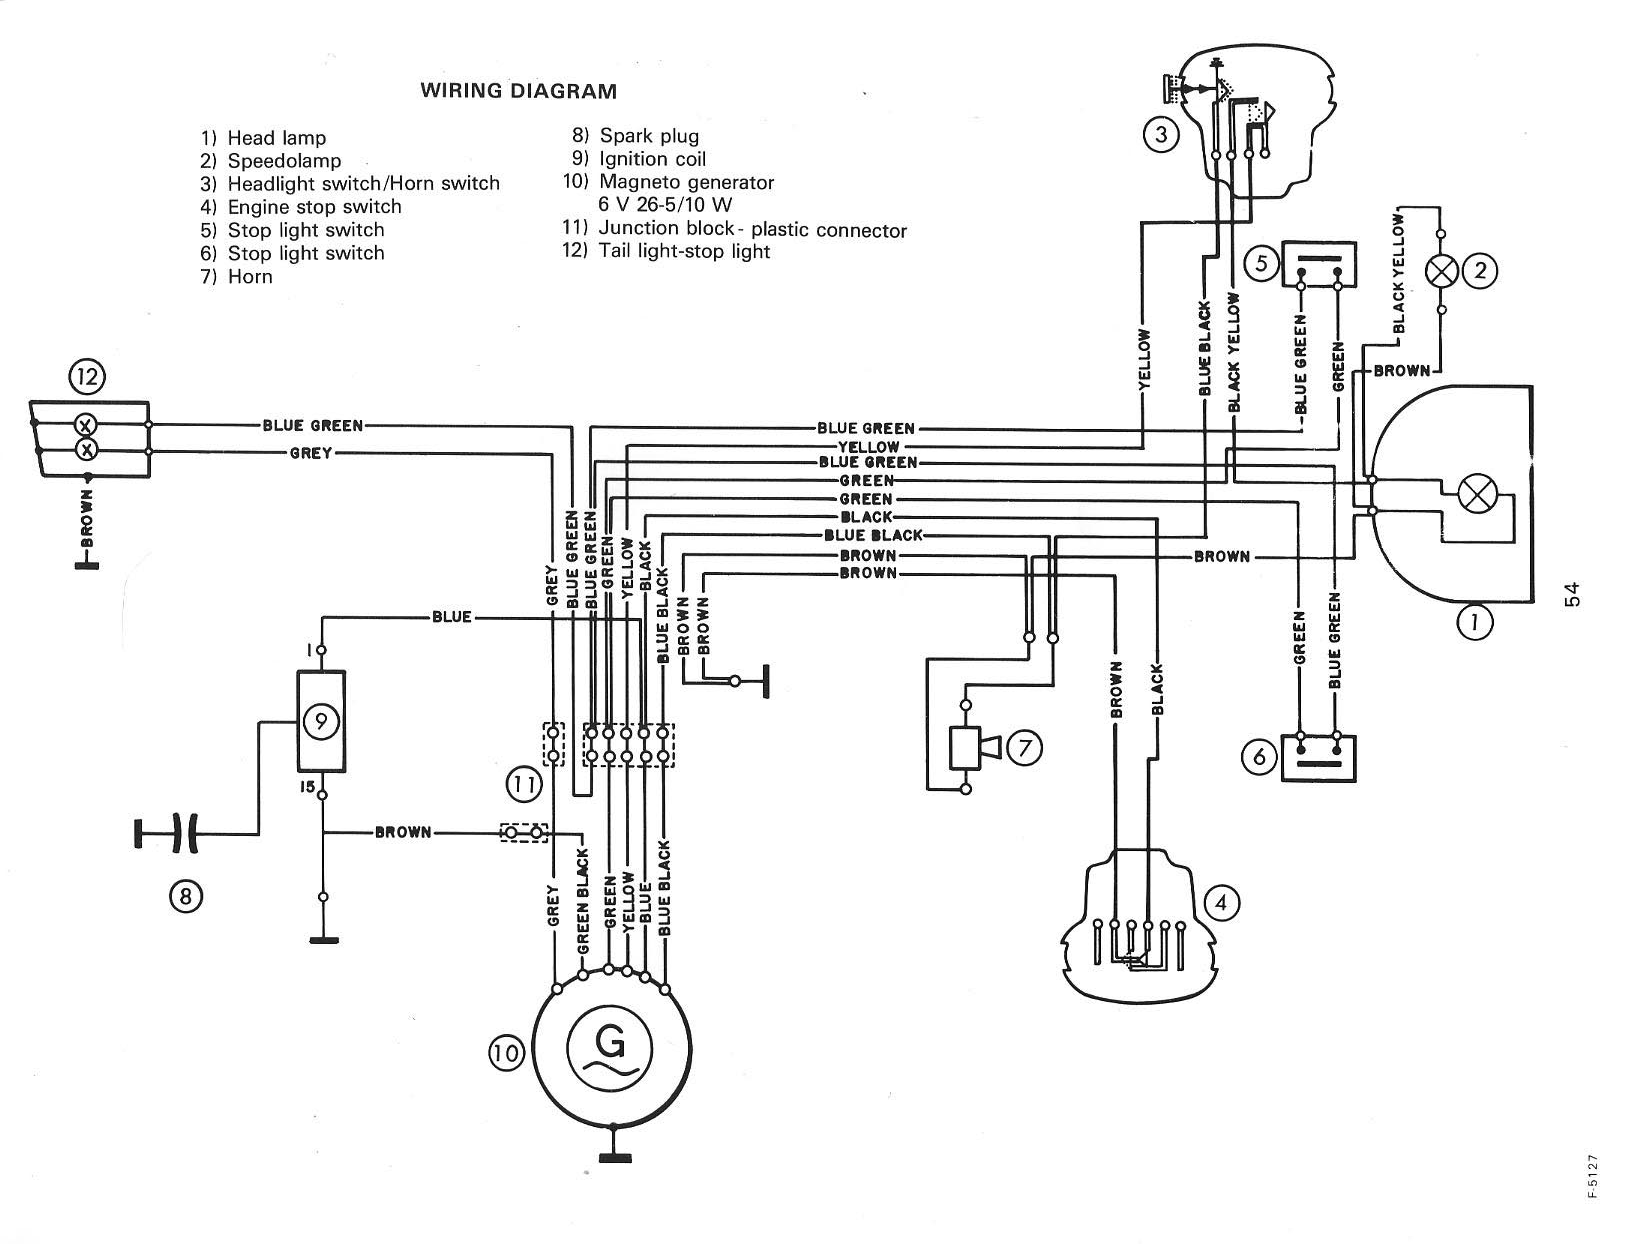 [XOTG_4463]  Puch wiring diagrams - Moped Wiki | Wiring Diagram Puch Newport |  | Moped Army